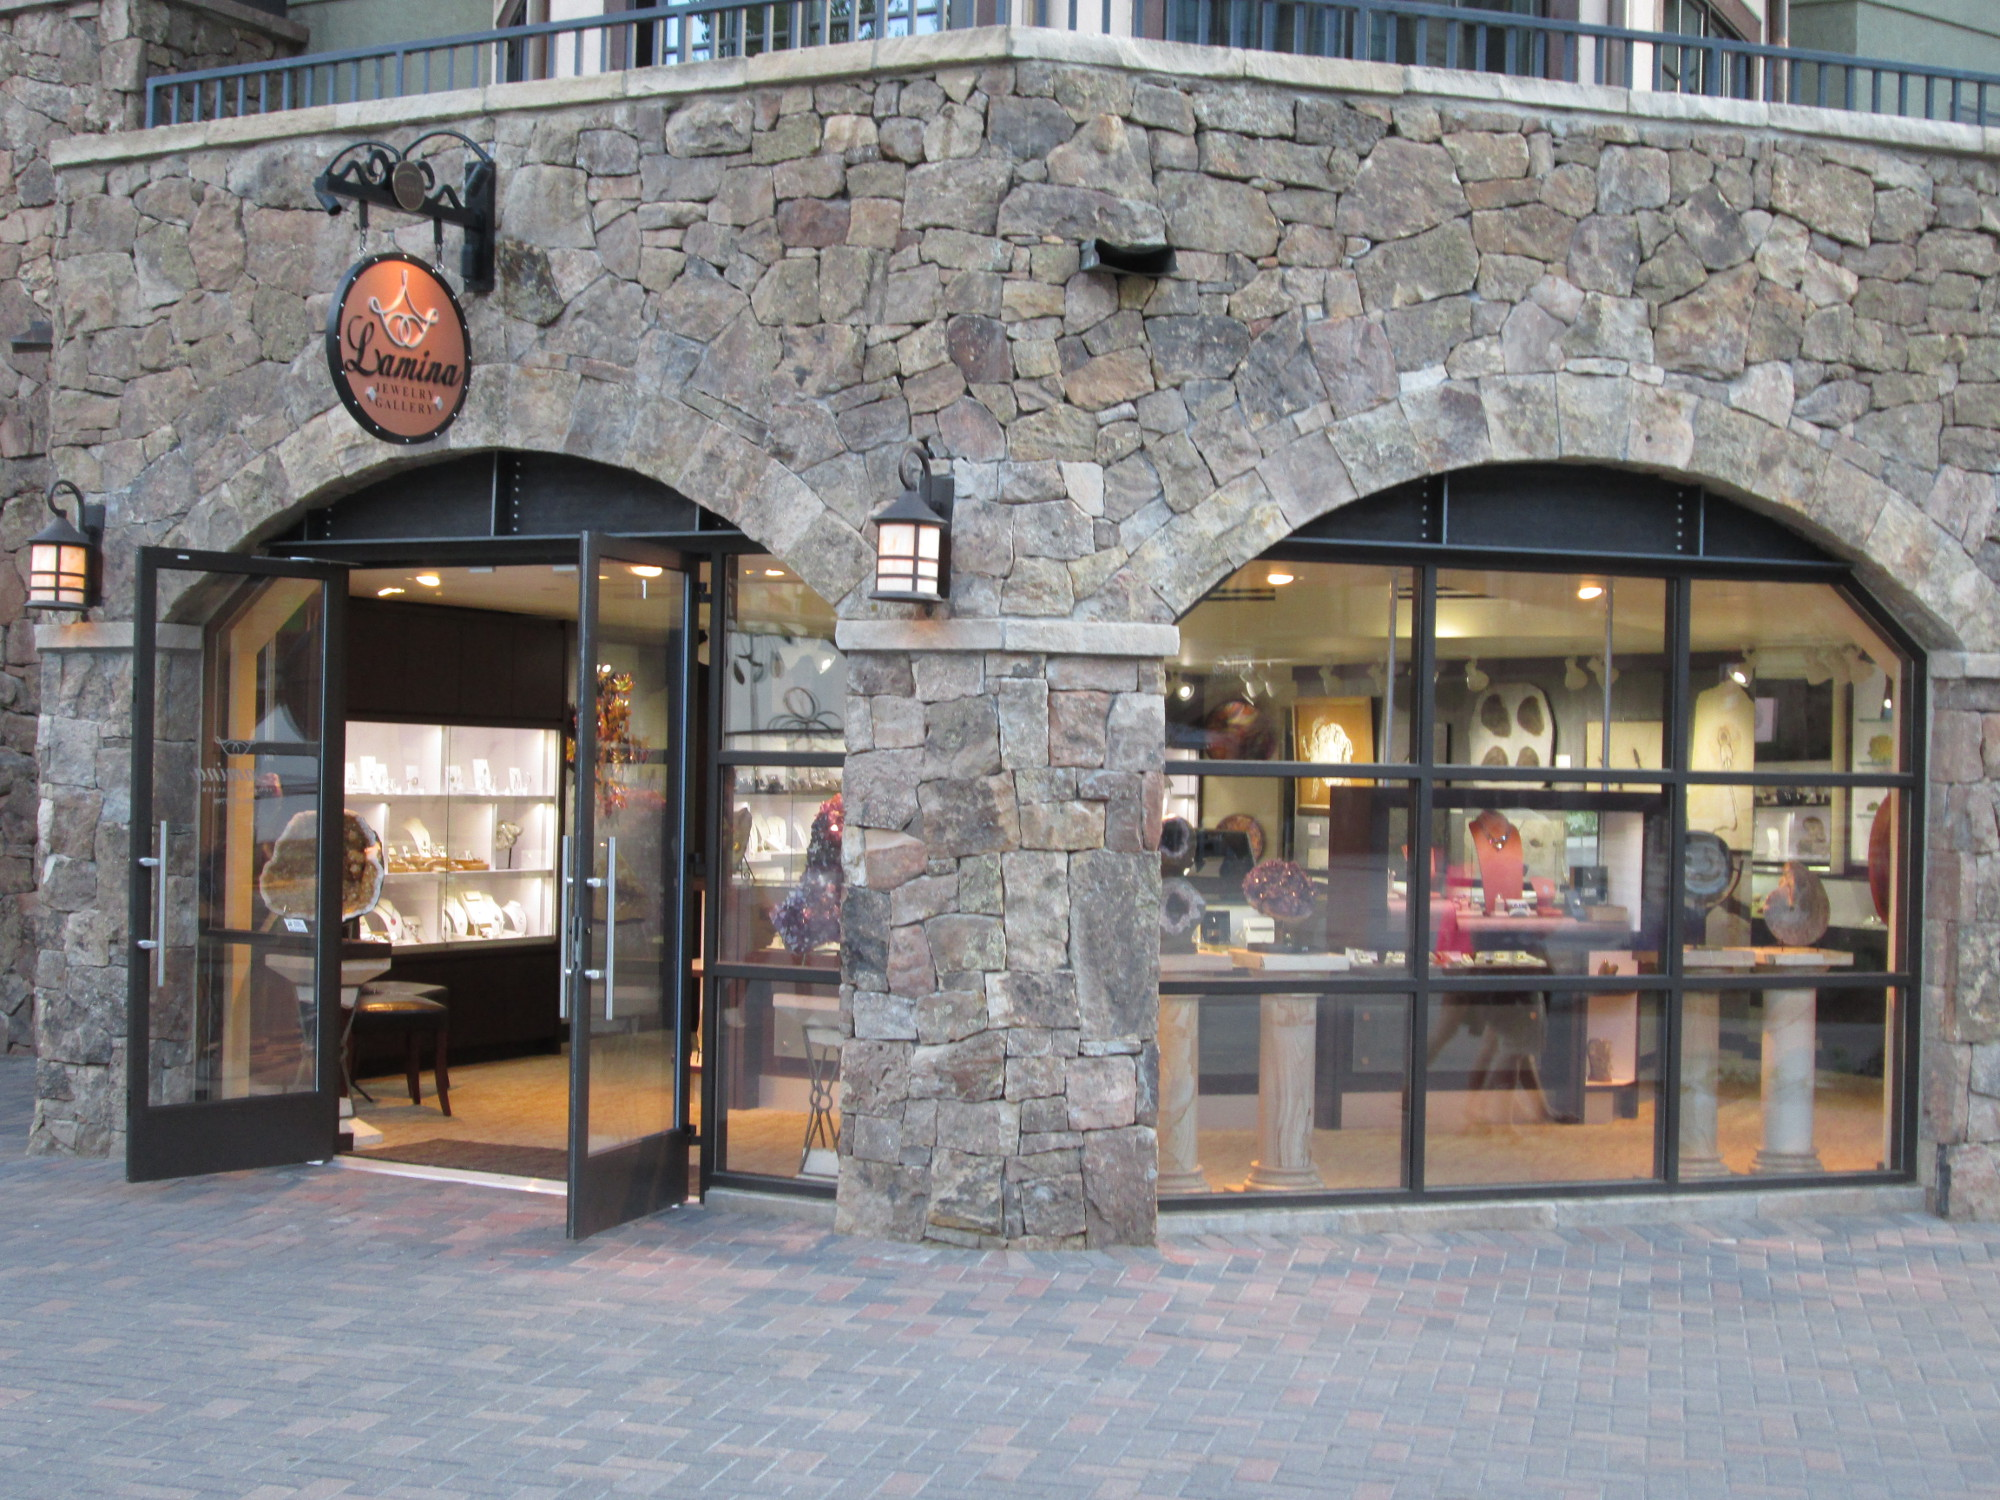 The stone exterior of the Lamina Vail's Premium Jewelry Store gives it so much personality, also they went for very wide windows, so that you can peek on what's inside.